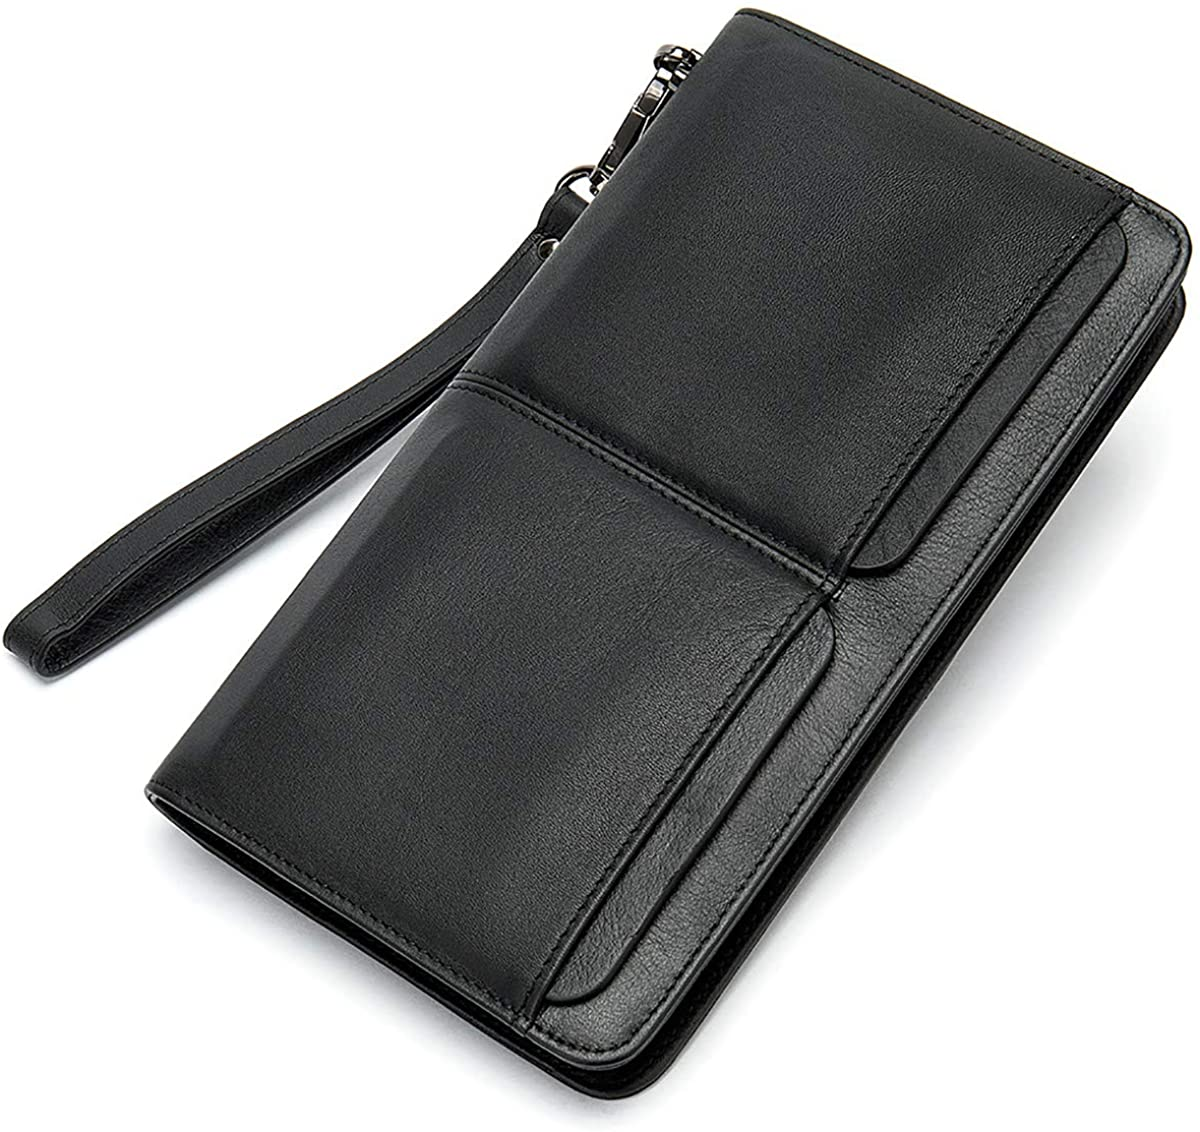 Retro Leather Men's Wallet Multi-function Long Purse Multi-bit Cowhide Clutch Bag